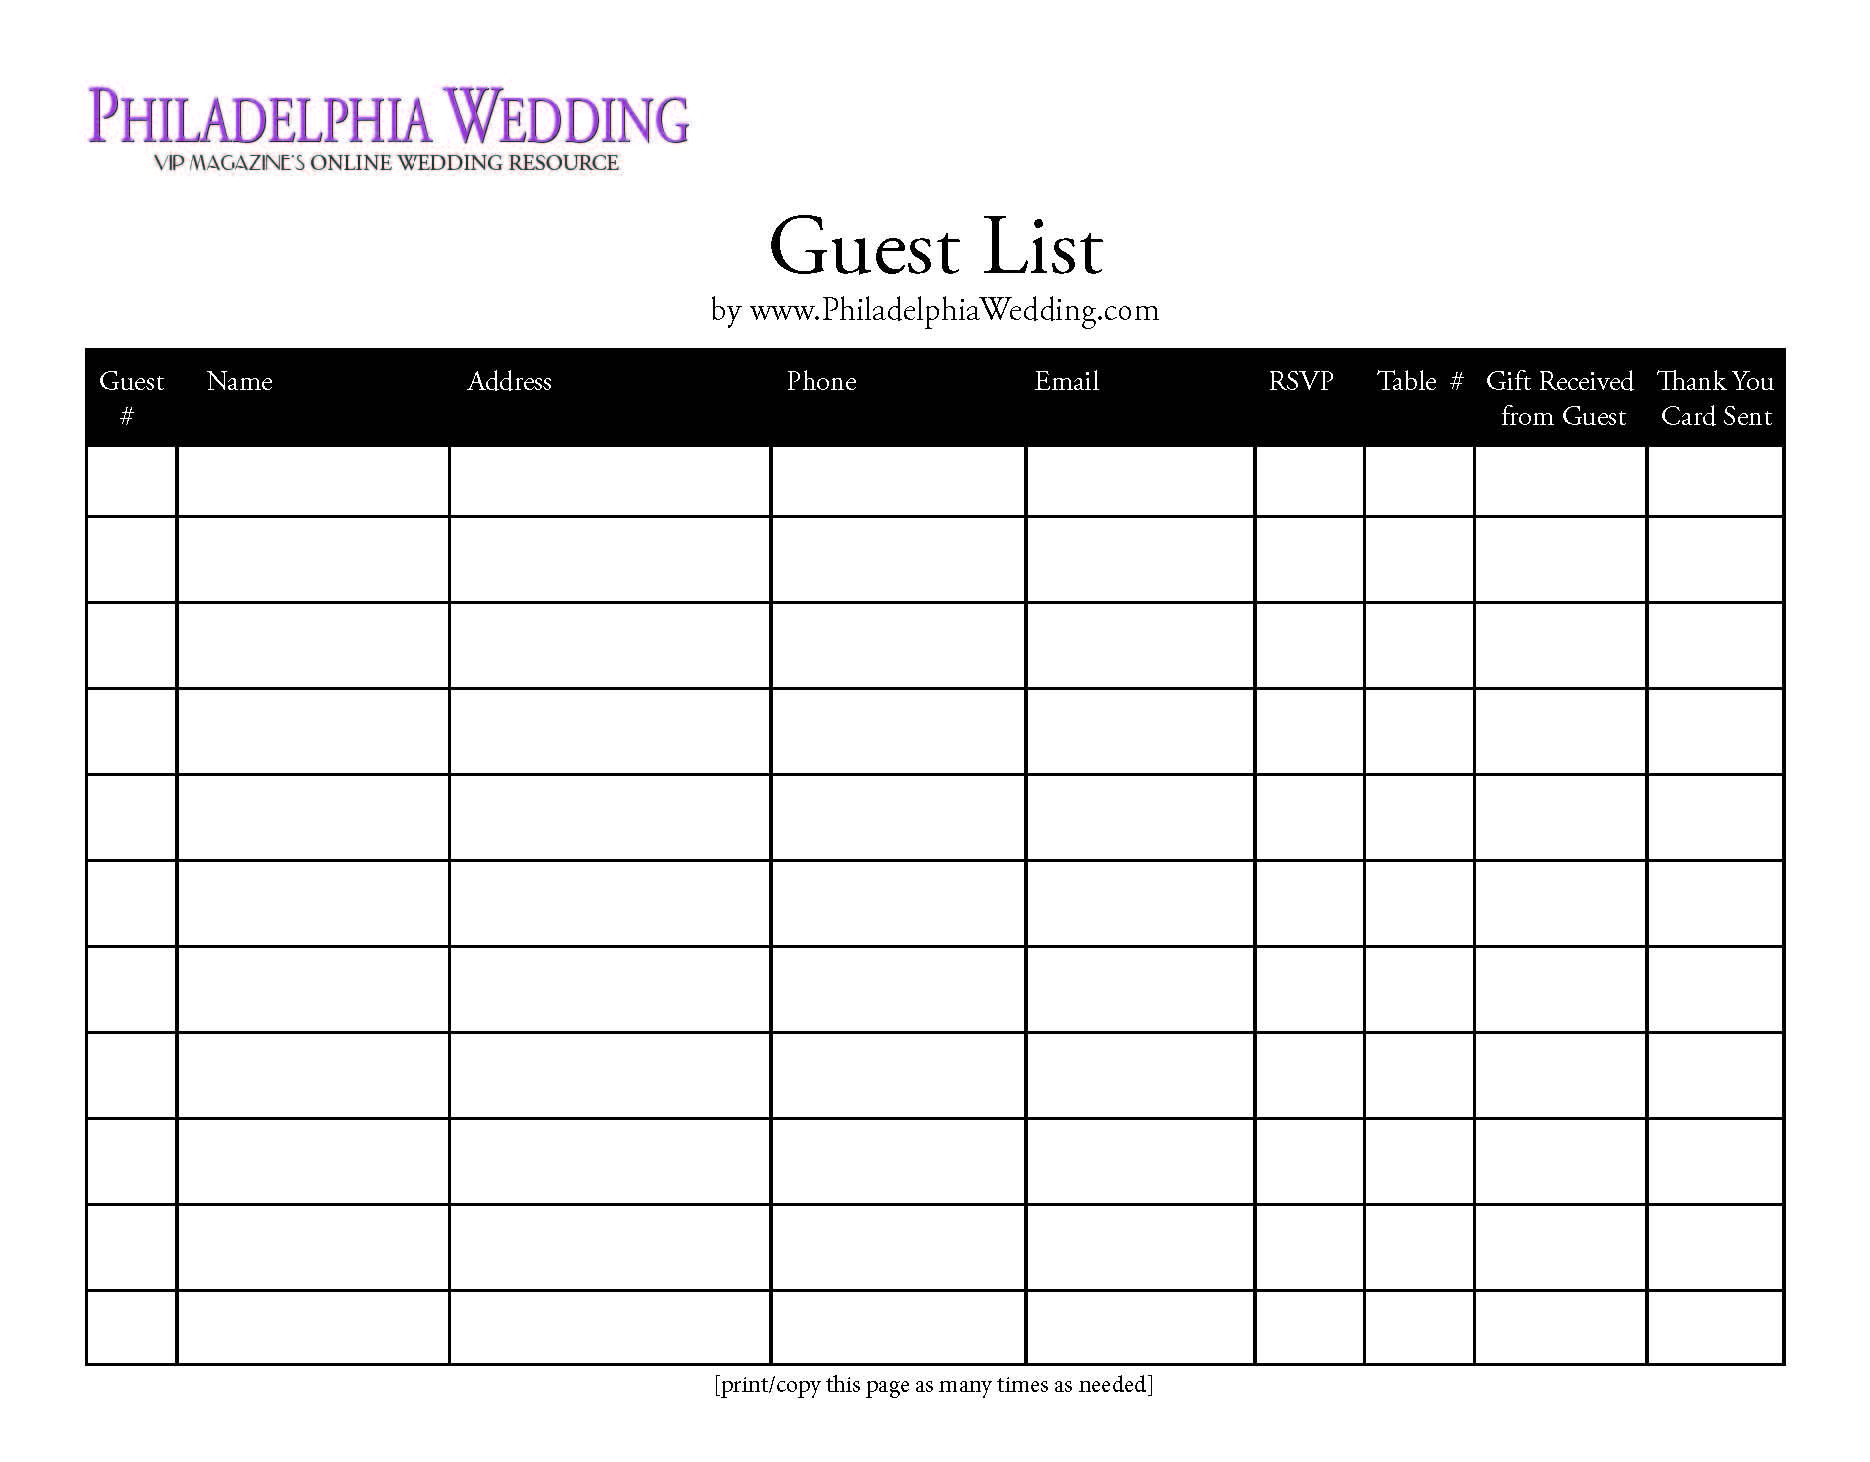 Wedding Guest List Template |  Free Wedding Guest List Template